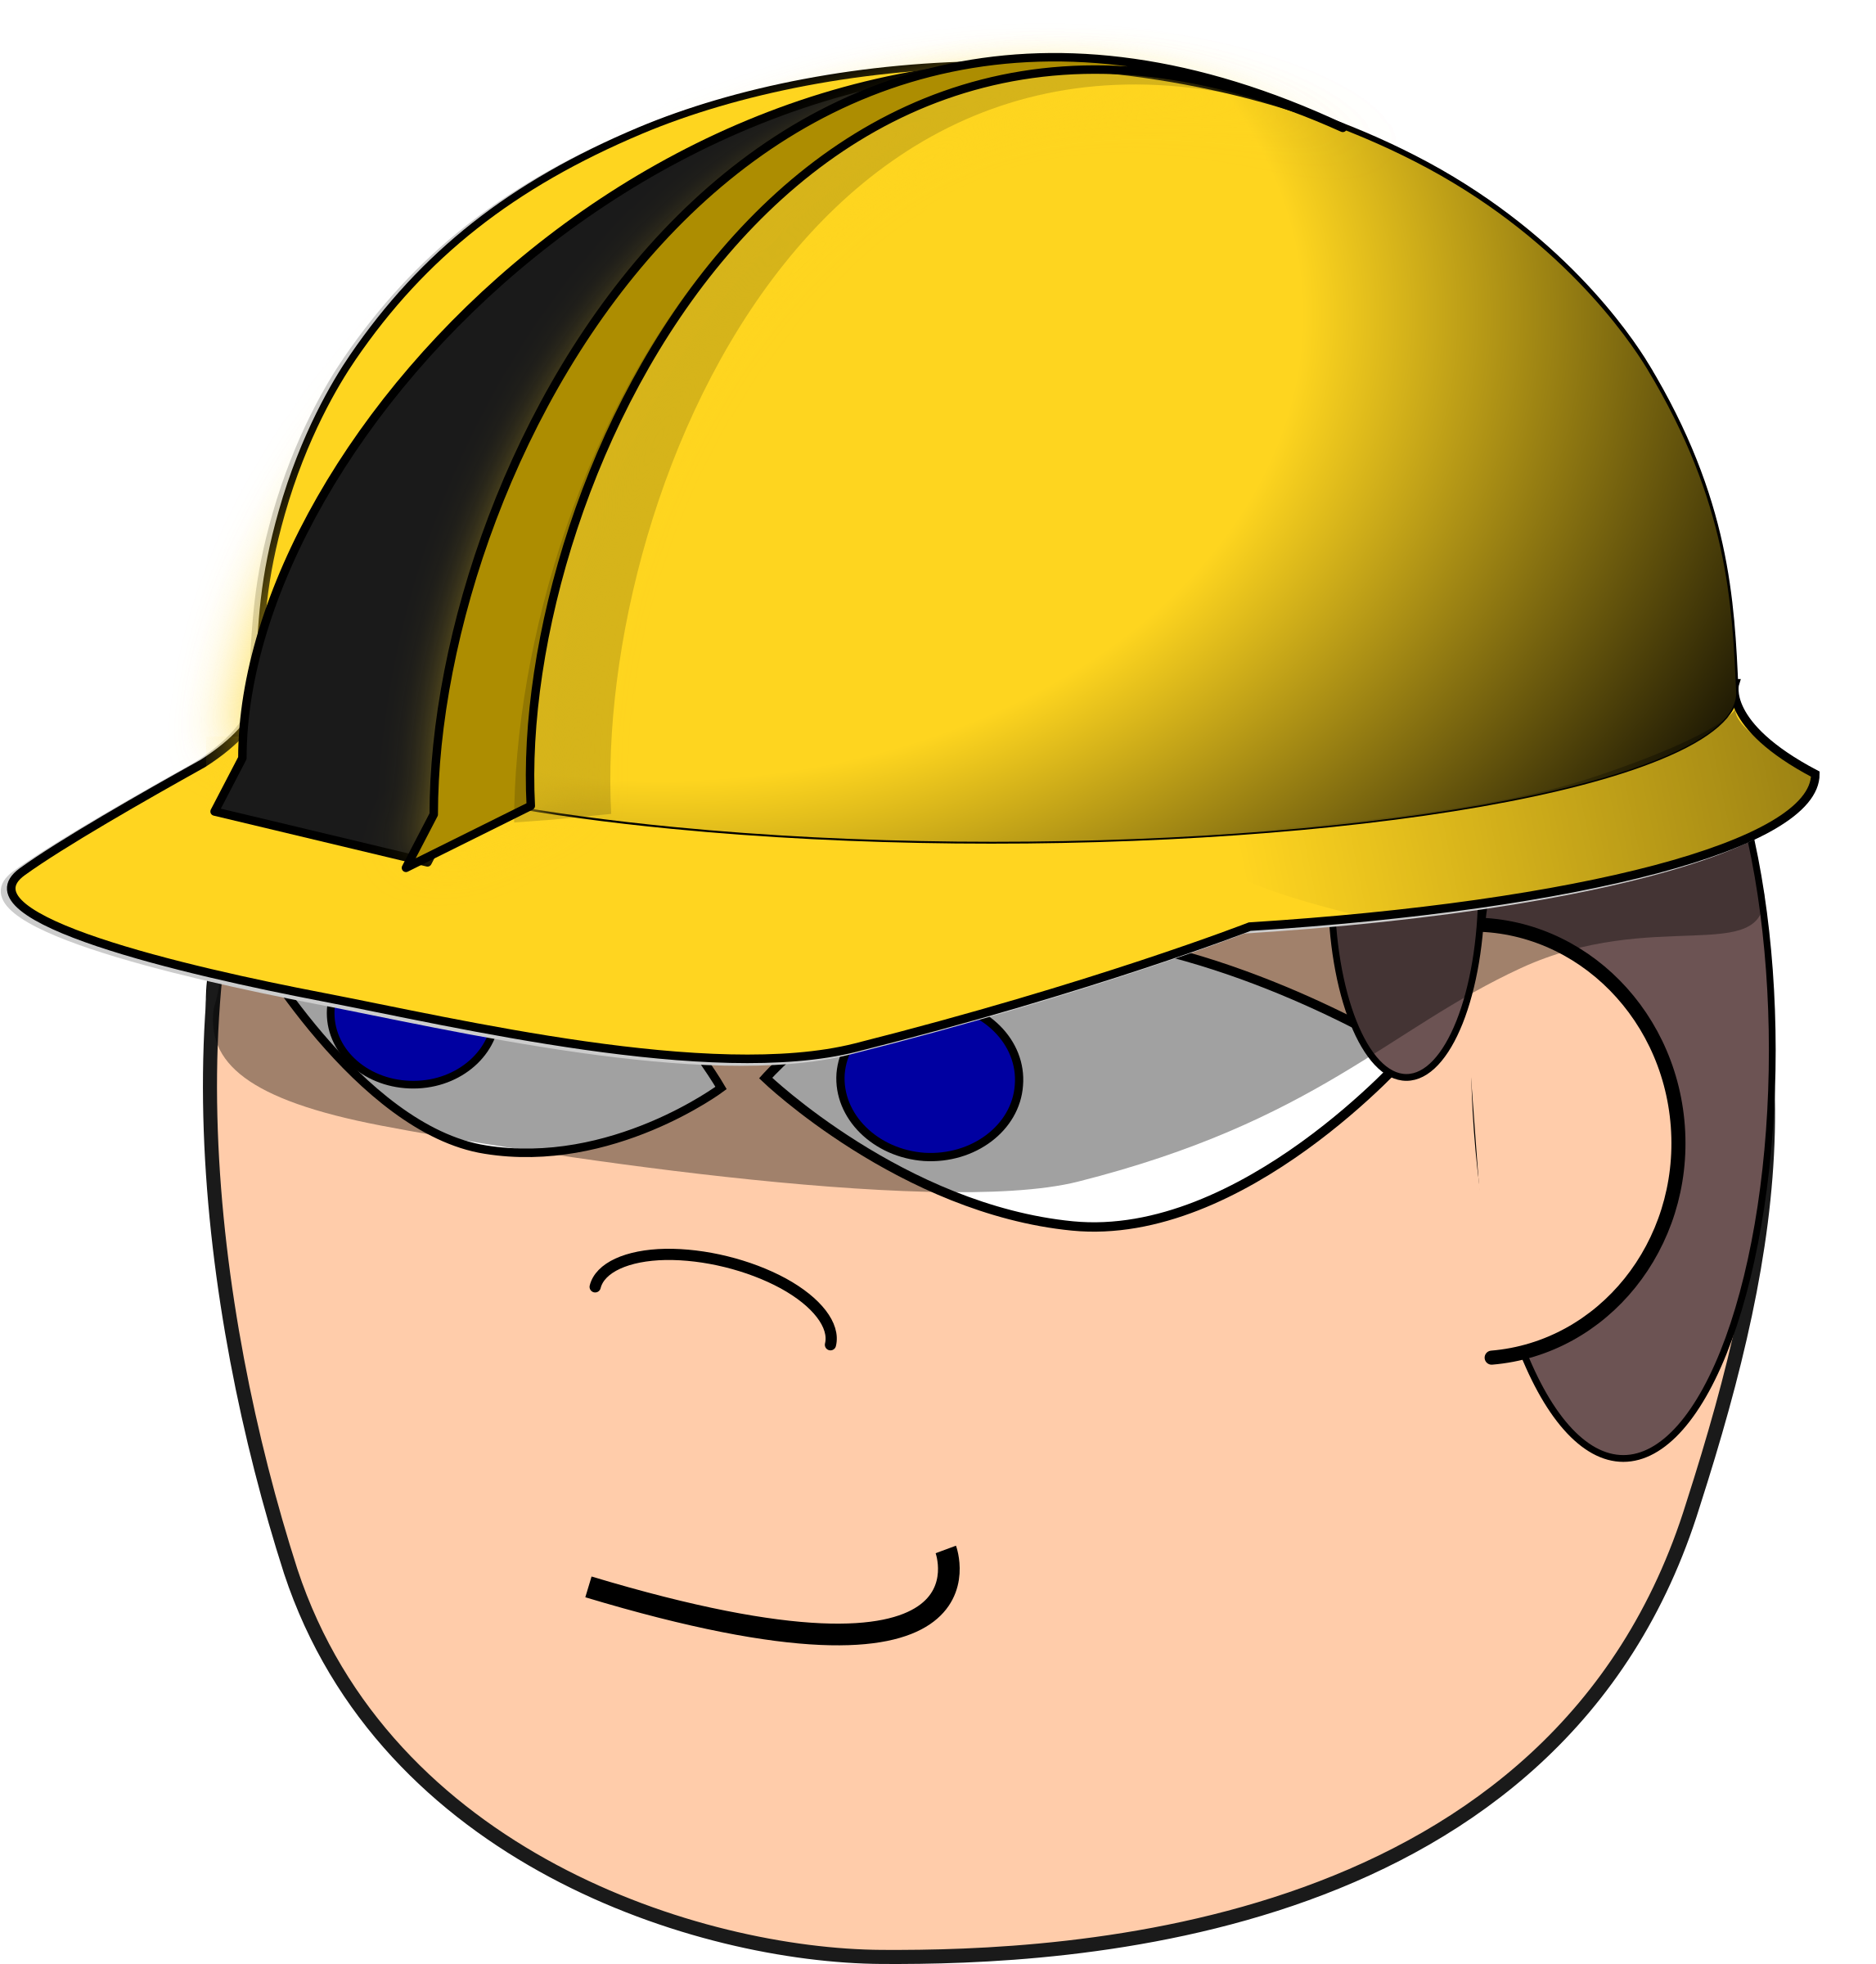 clipart freeuse library Construction worker hat clipart. Big image png.